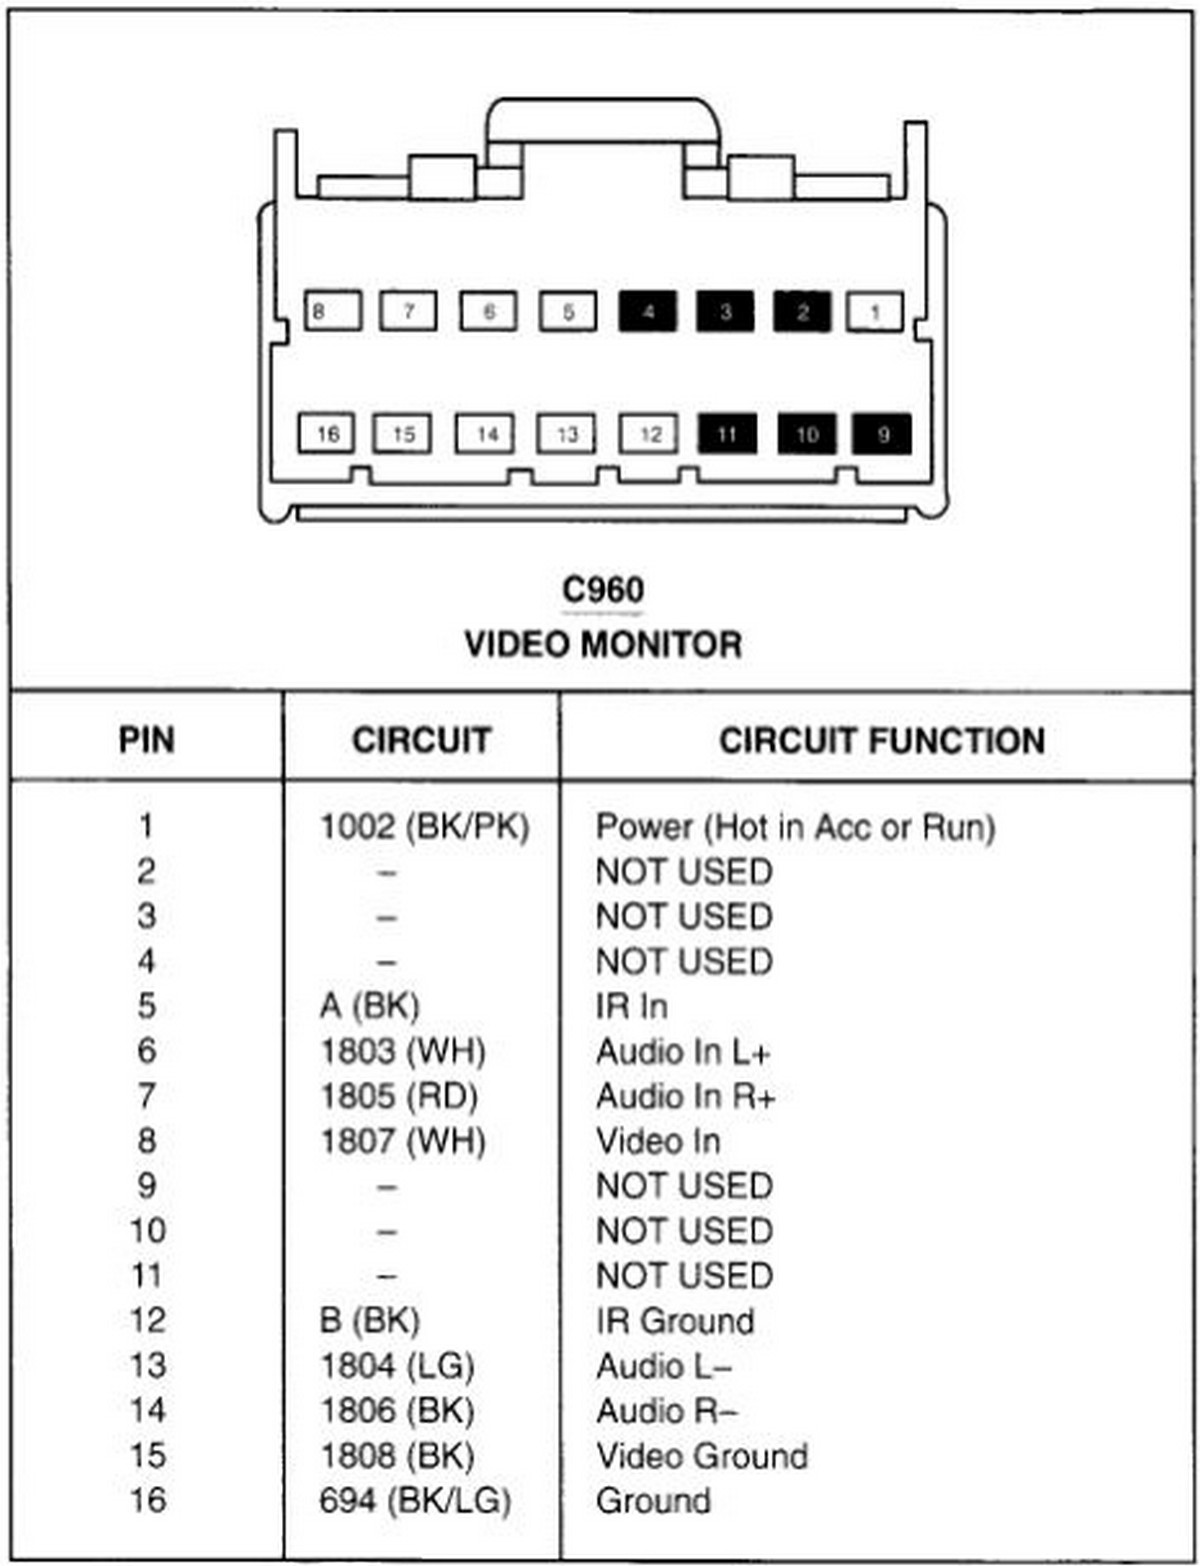 1995 Ford Windstar Wiring Diagram Auto Diagrams Car Radio Stereo Audio Autoradio Connector Wire Installation Schematic Schema Esquema De Conexiones Stecker Konektor Connecteur Cable